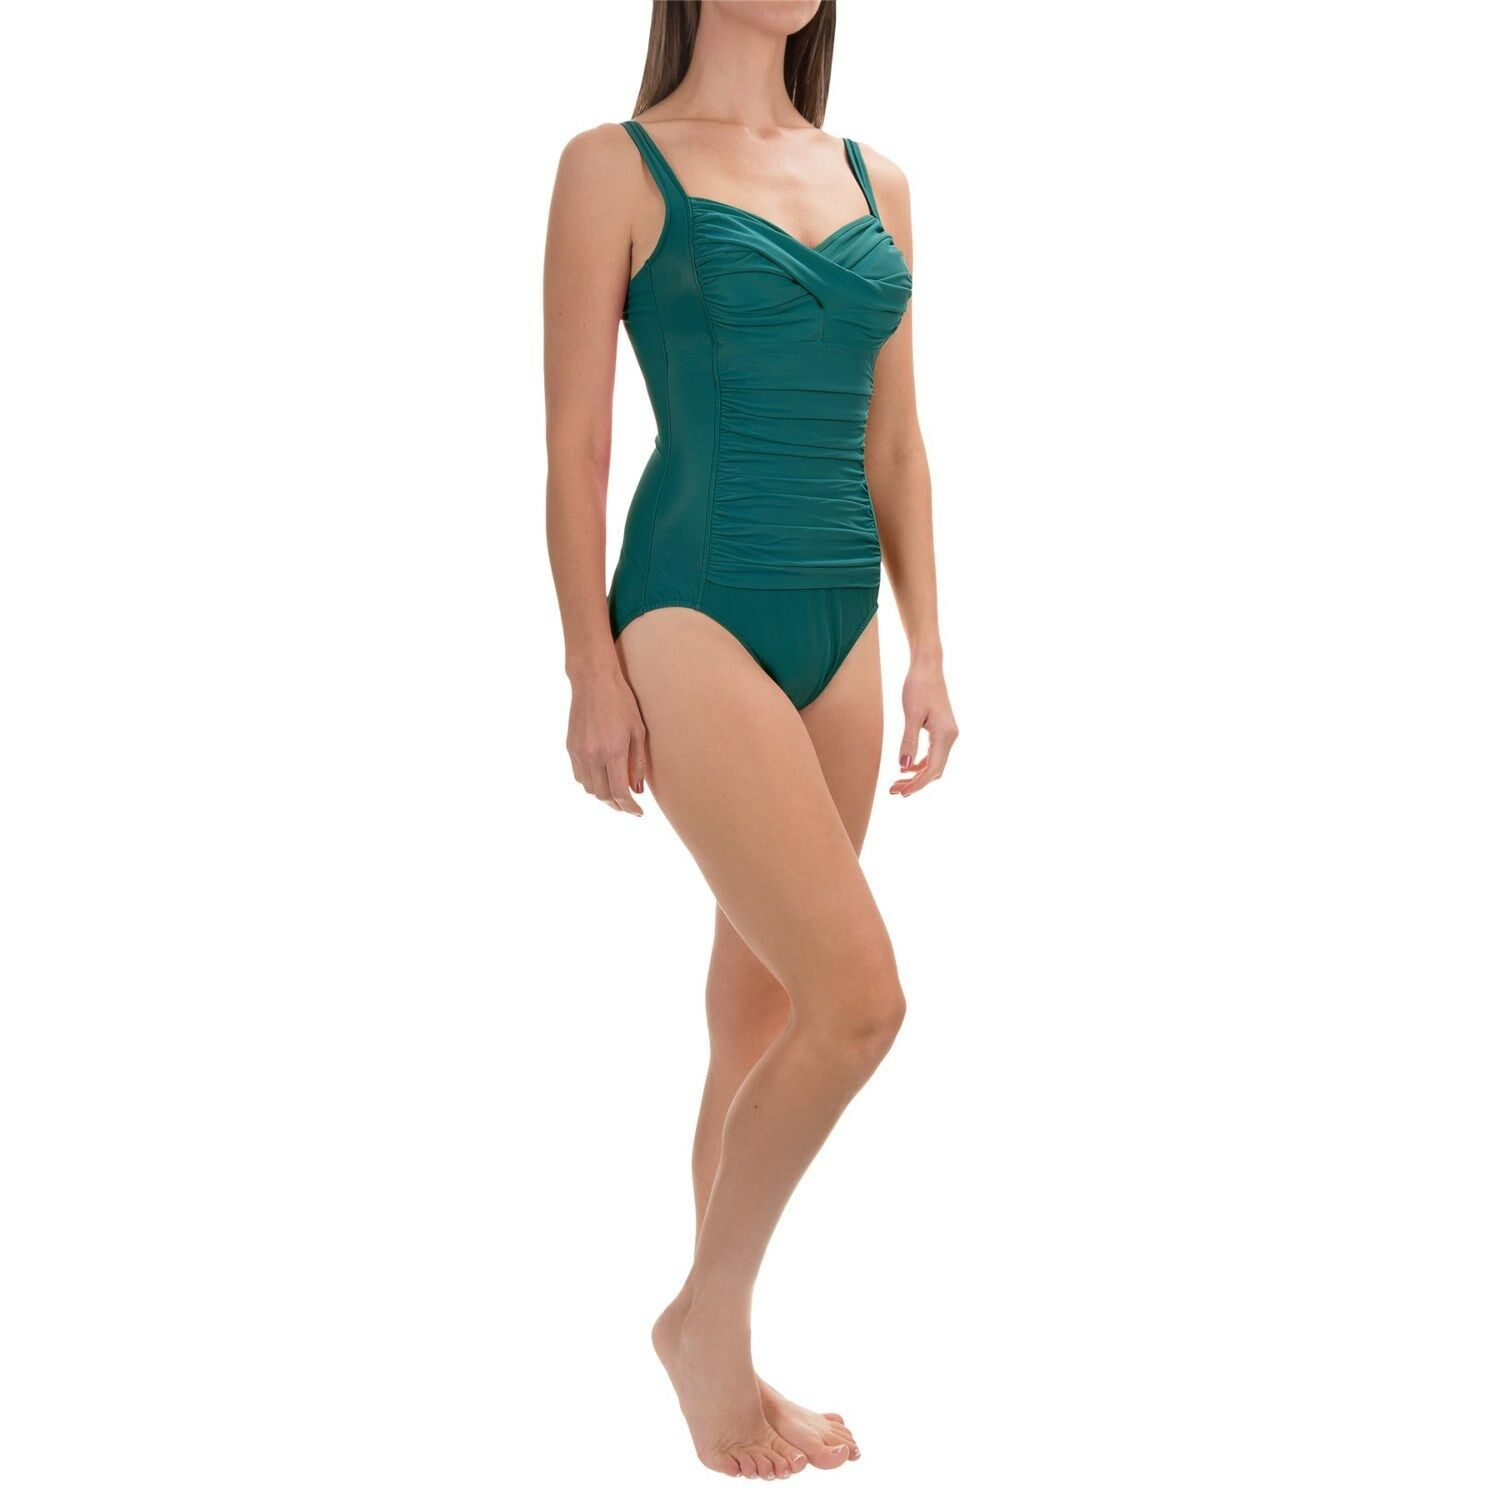 NEW MIRACLESUIT 1 PC SWIMSUIT 16 46 Averi  150 Retail SLIMMING Teal Green